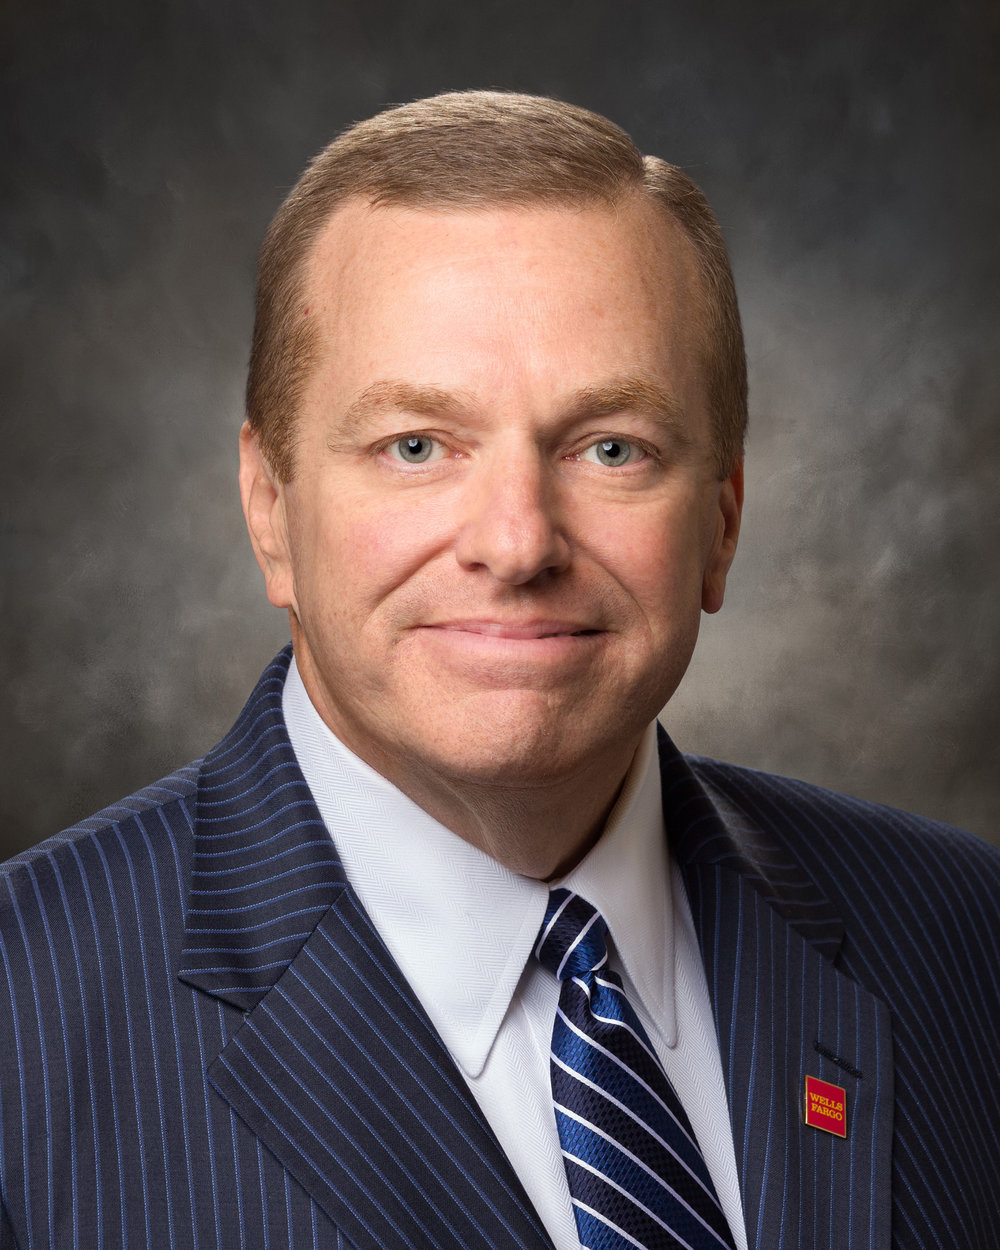 Scott M. Coble, Wells Fargo Florida Community Bank President